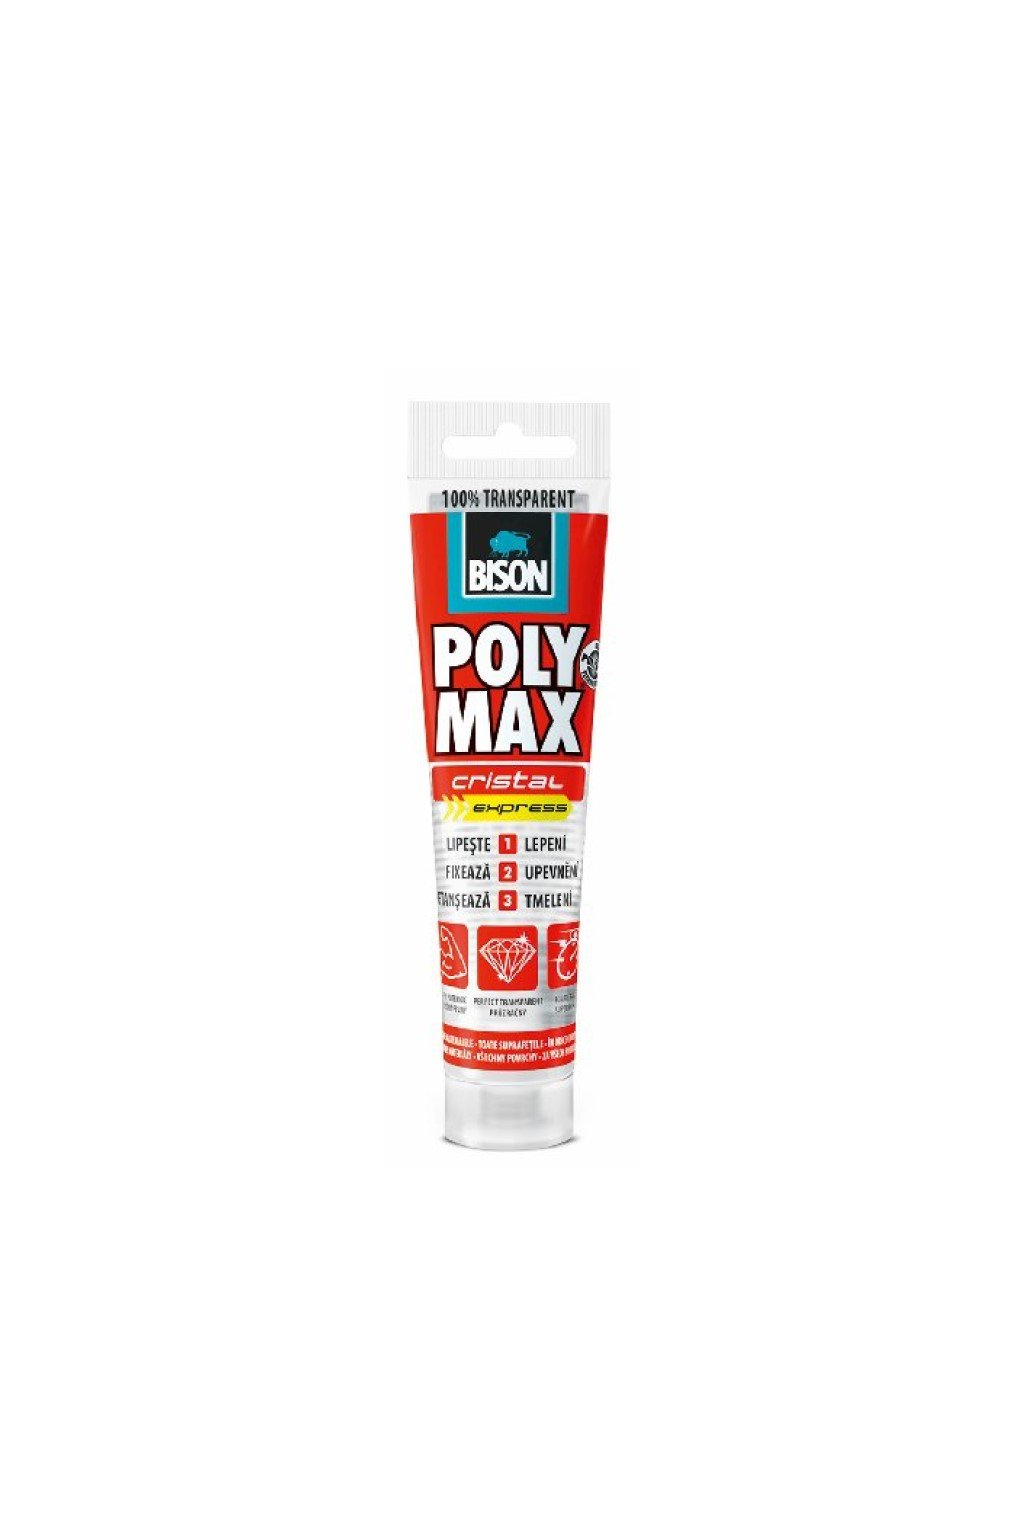 Bison POLY MAX